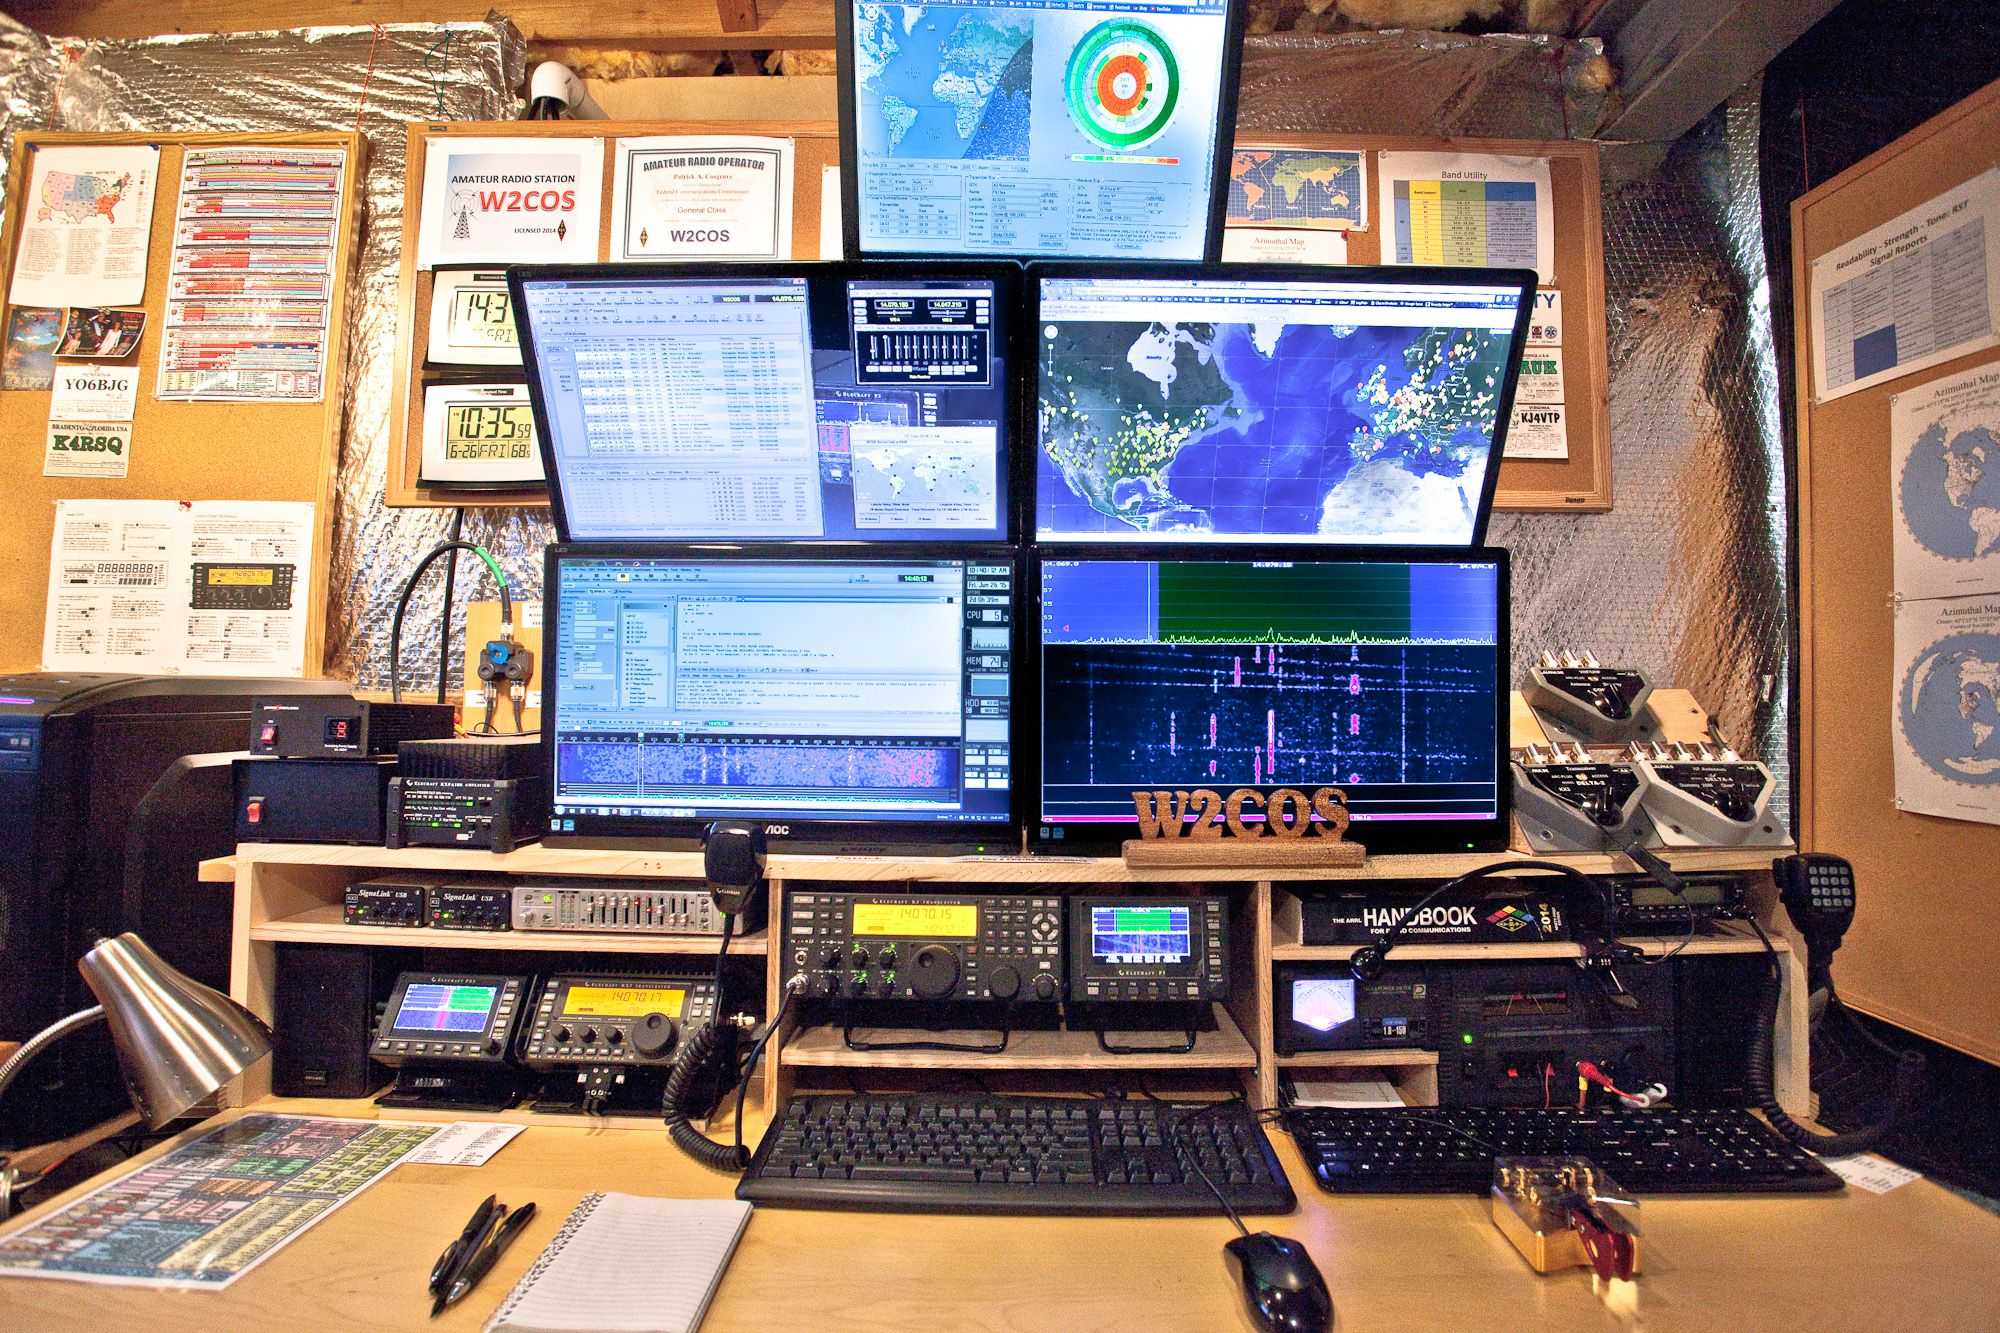 Amateur Radio Station Wb4omm: Drag To Resize Or Shift+drag To Move